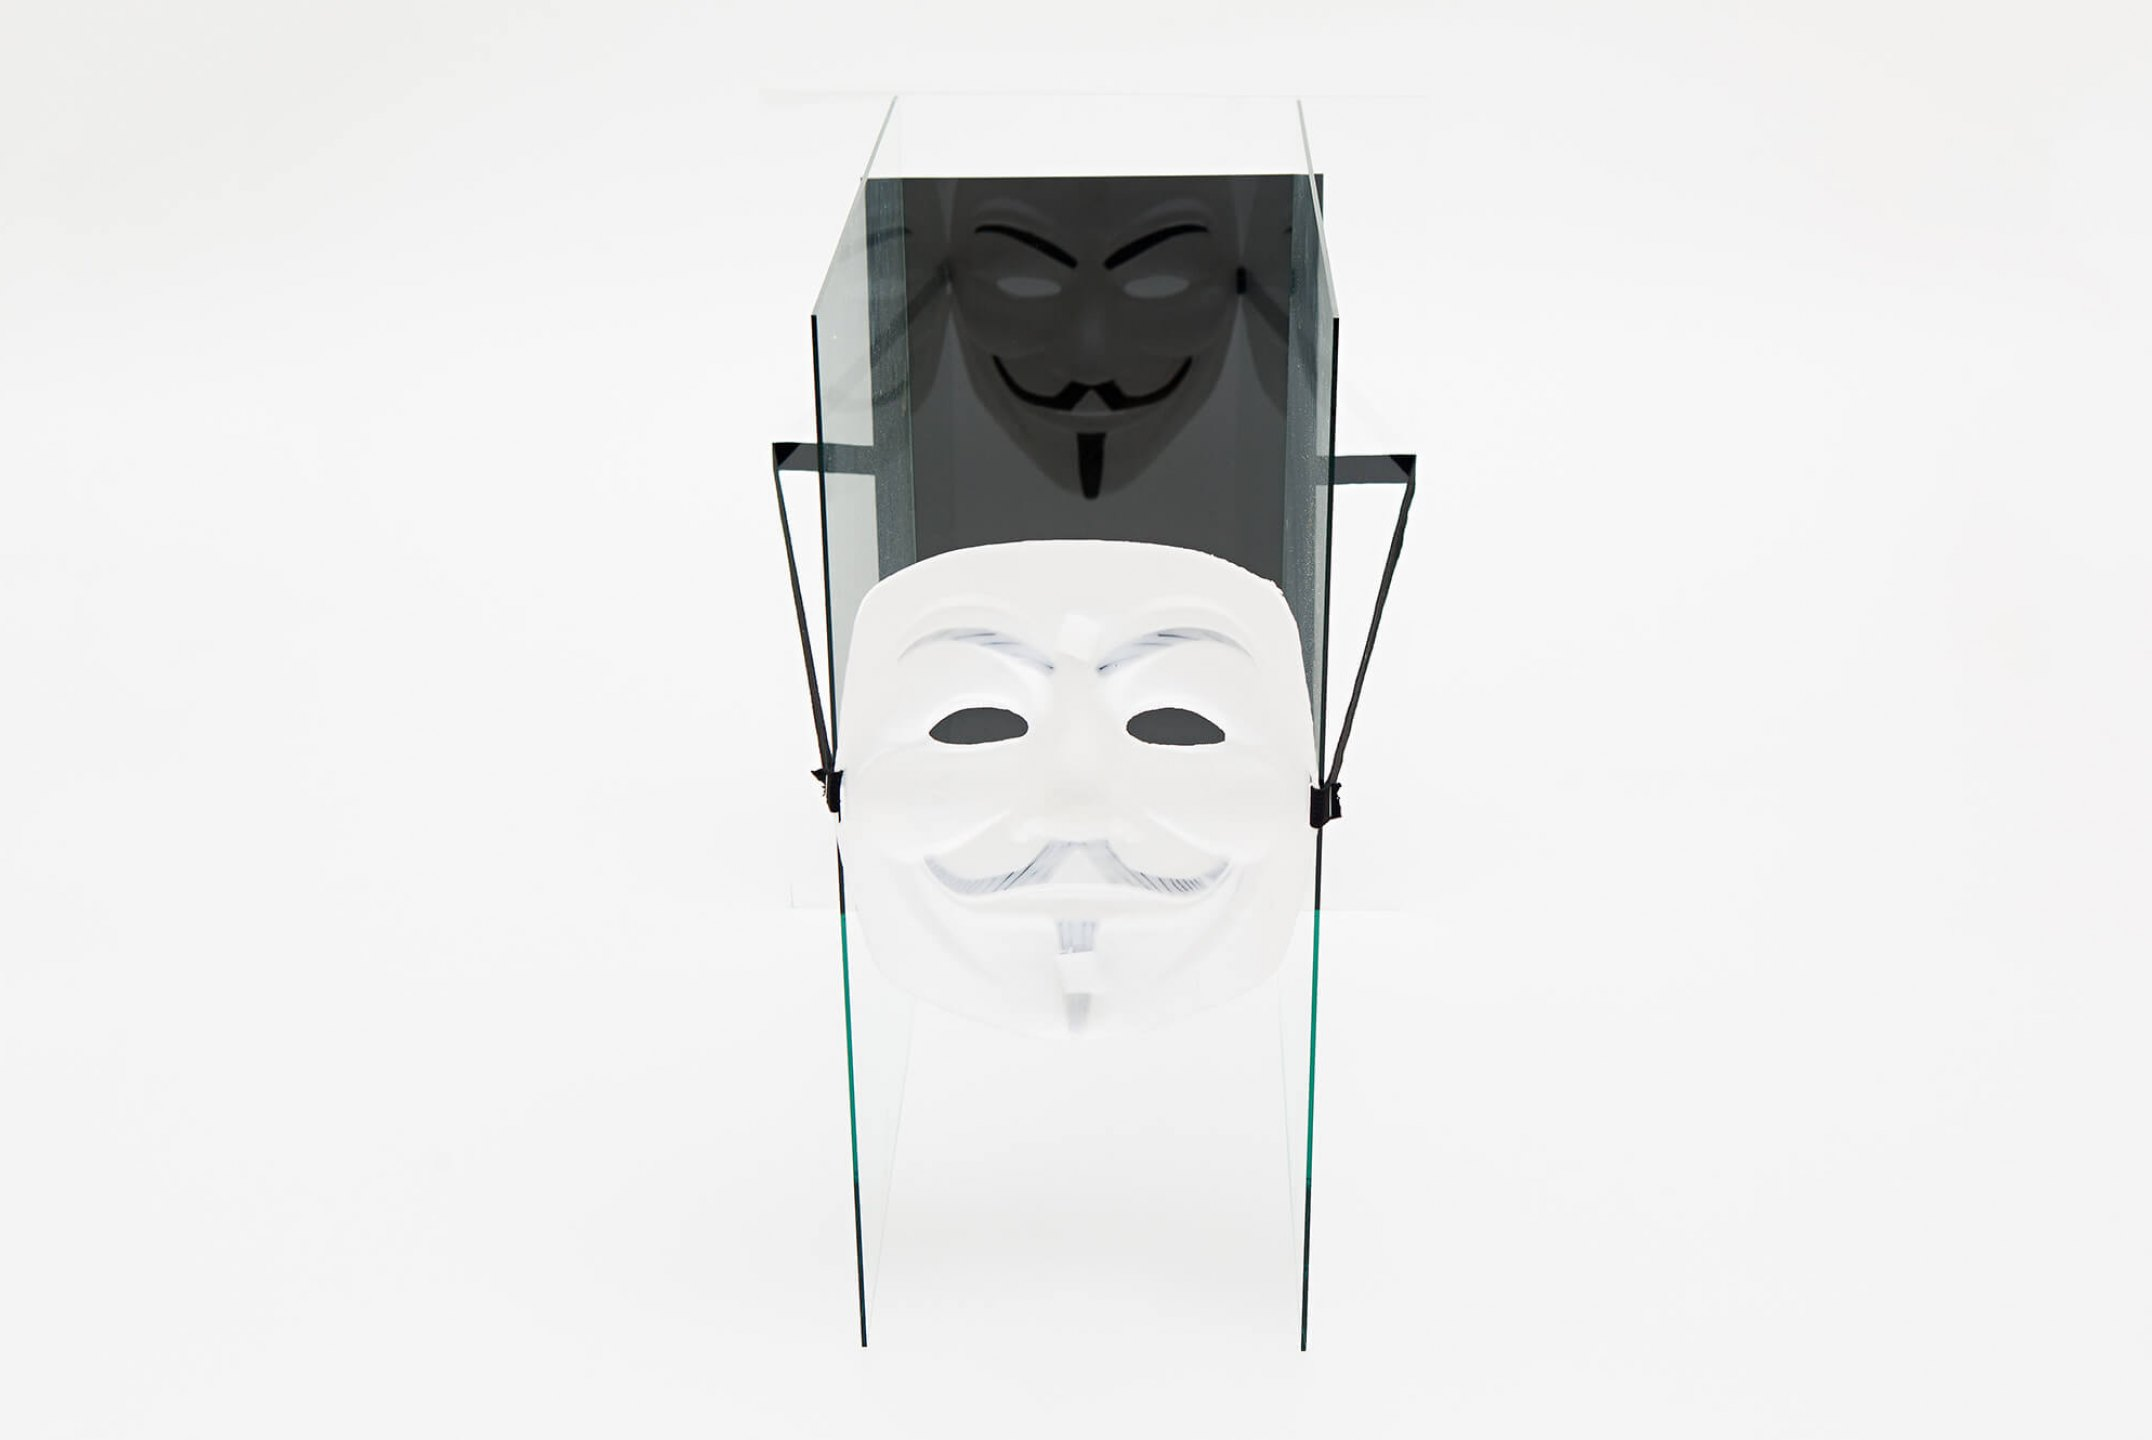 Roberto Winter, <em>Revolution institution</em>, 2014, 'Guy Fawkes' mask (painted plastic), elastic, envelope, paper and glass, 40 × 40 × 40 cm - Mendes Wood DM